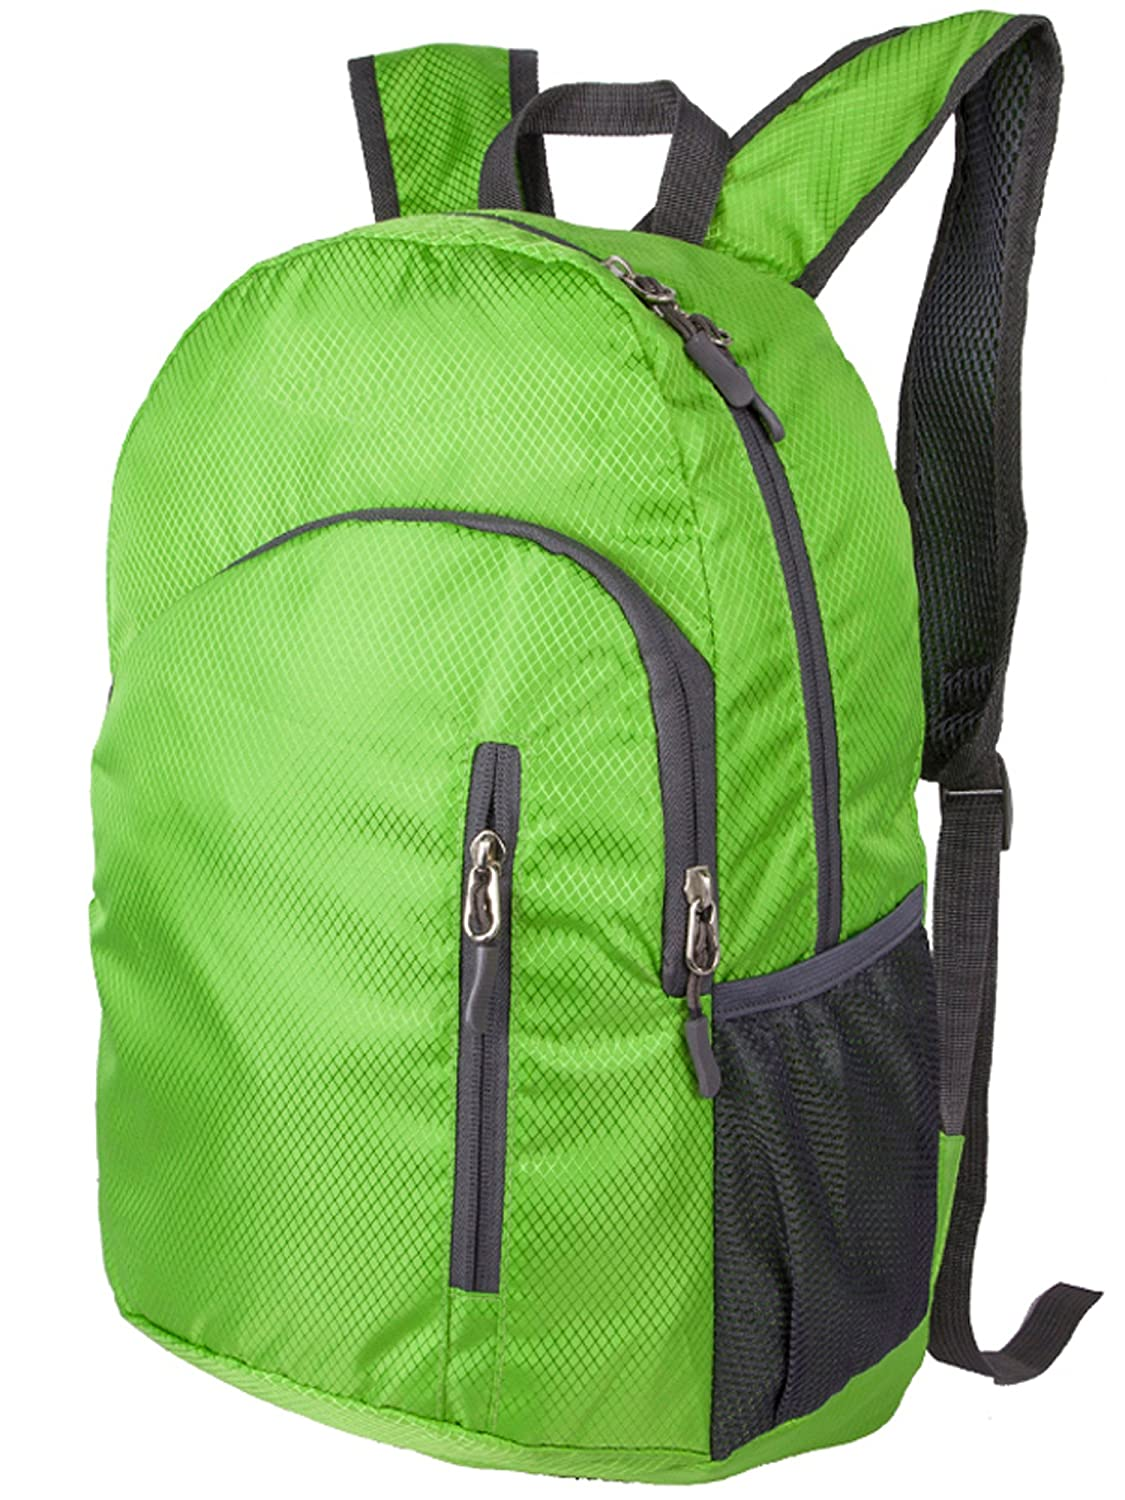 09bd337ebed2 MODARANI Lightweight Packable Backpack Foldable Small Portable Hiking Day  Pack for Travel Camping 20L